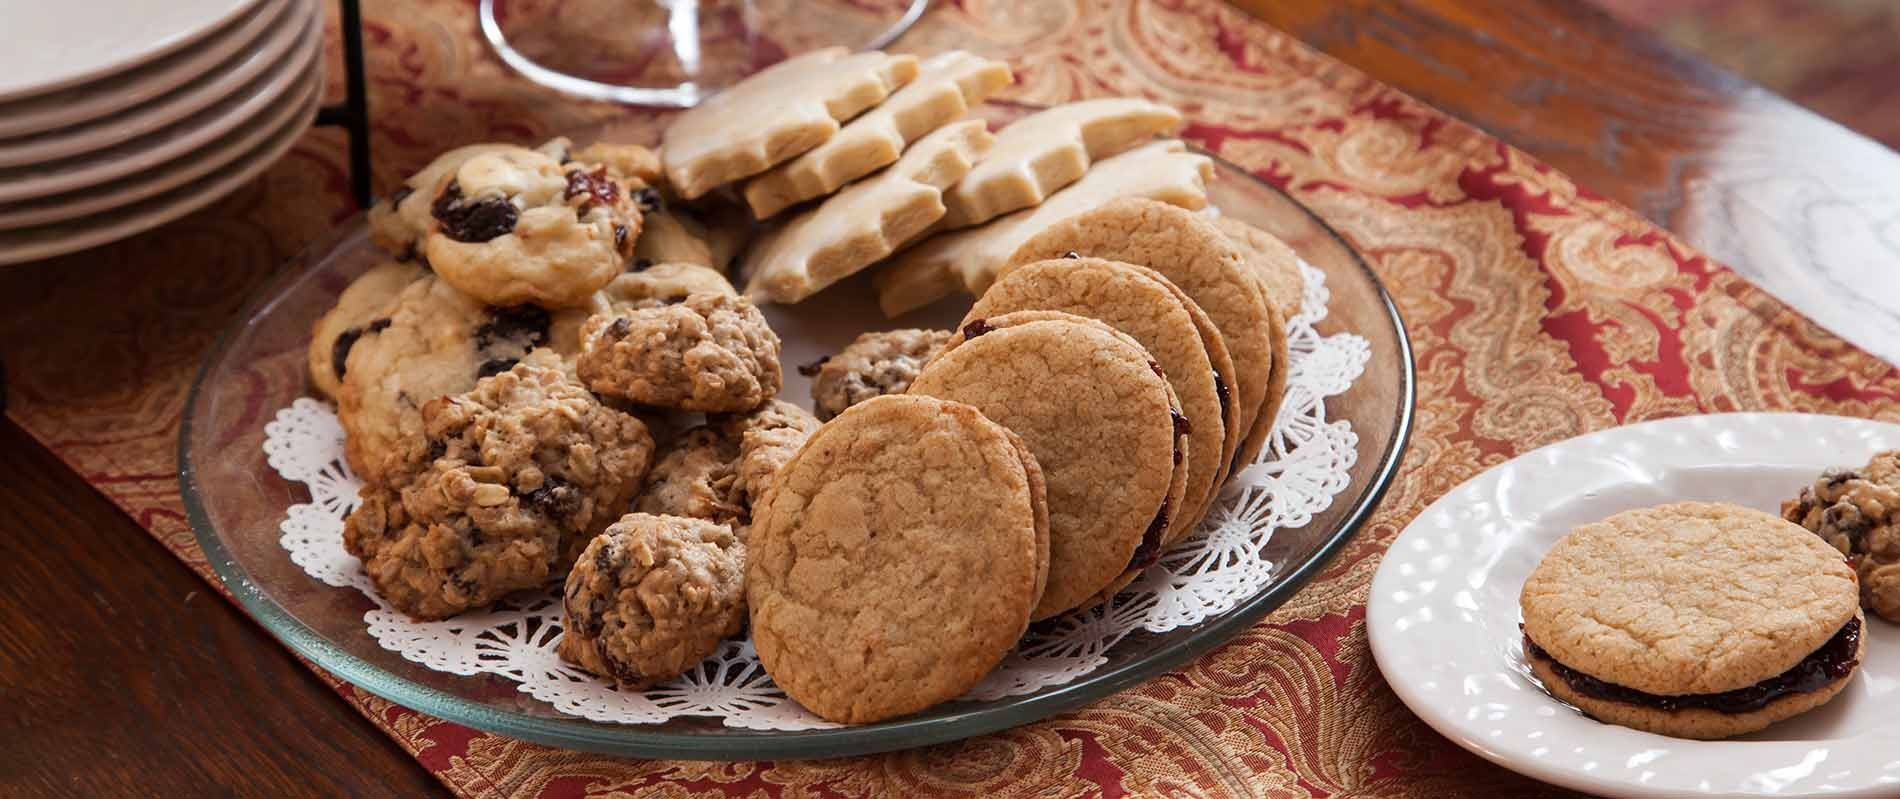 Burlington Bed and Breakfast Cookies & Snacks